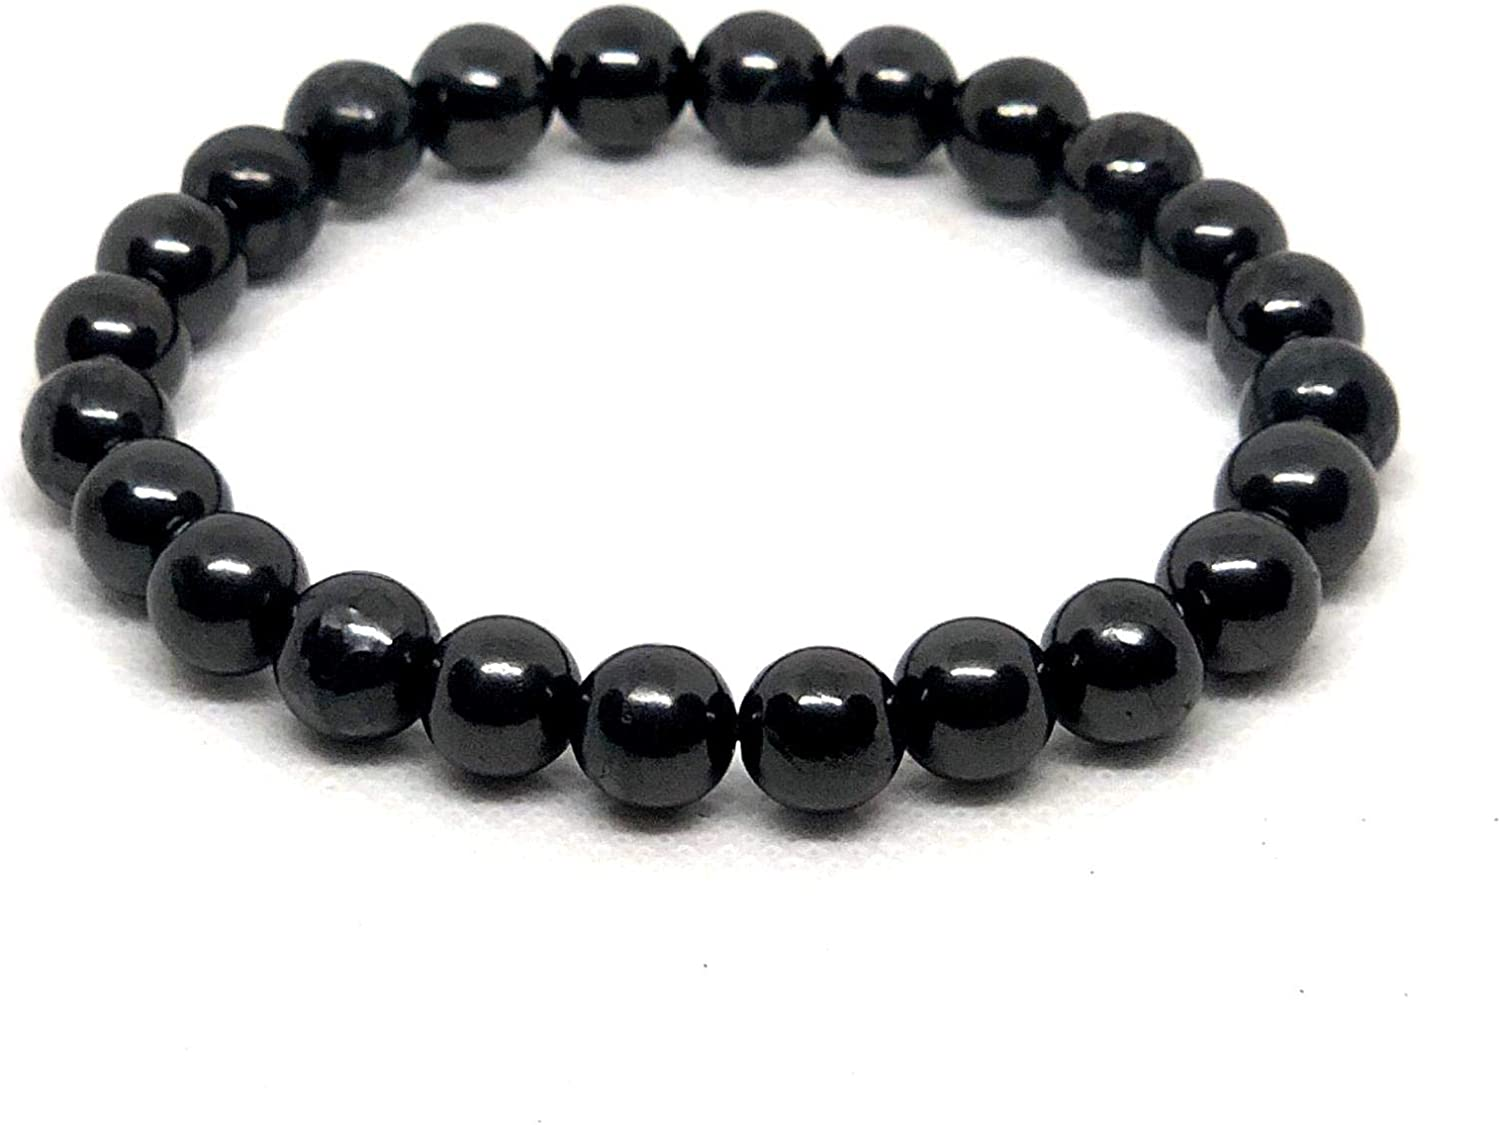 For handmade EMF Protection 5G protection,recovery Round polished natural shungite beads 8 mm.Shungite stone for needlework